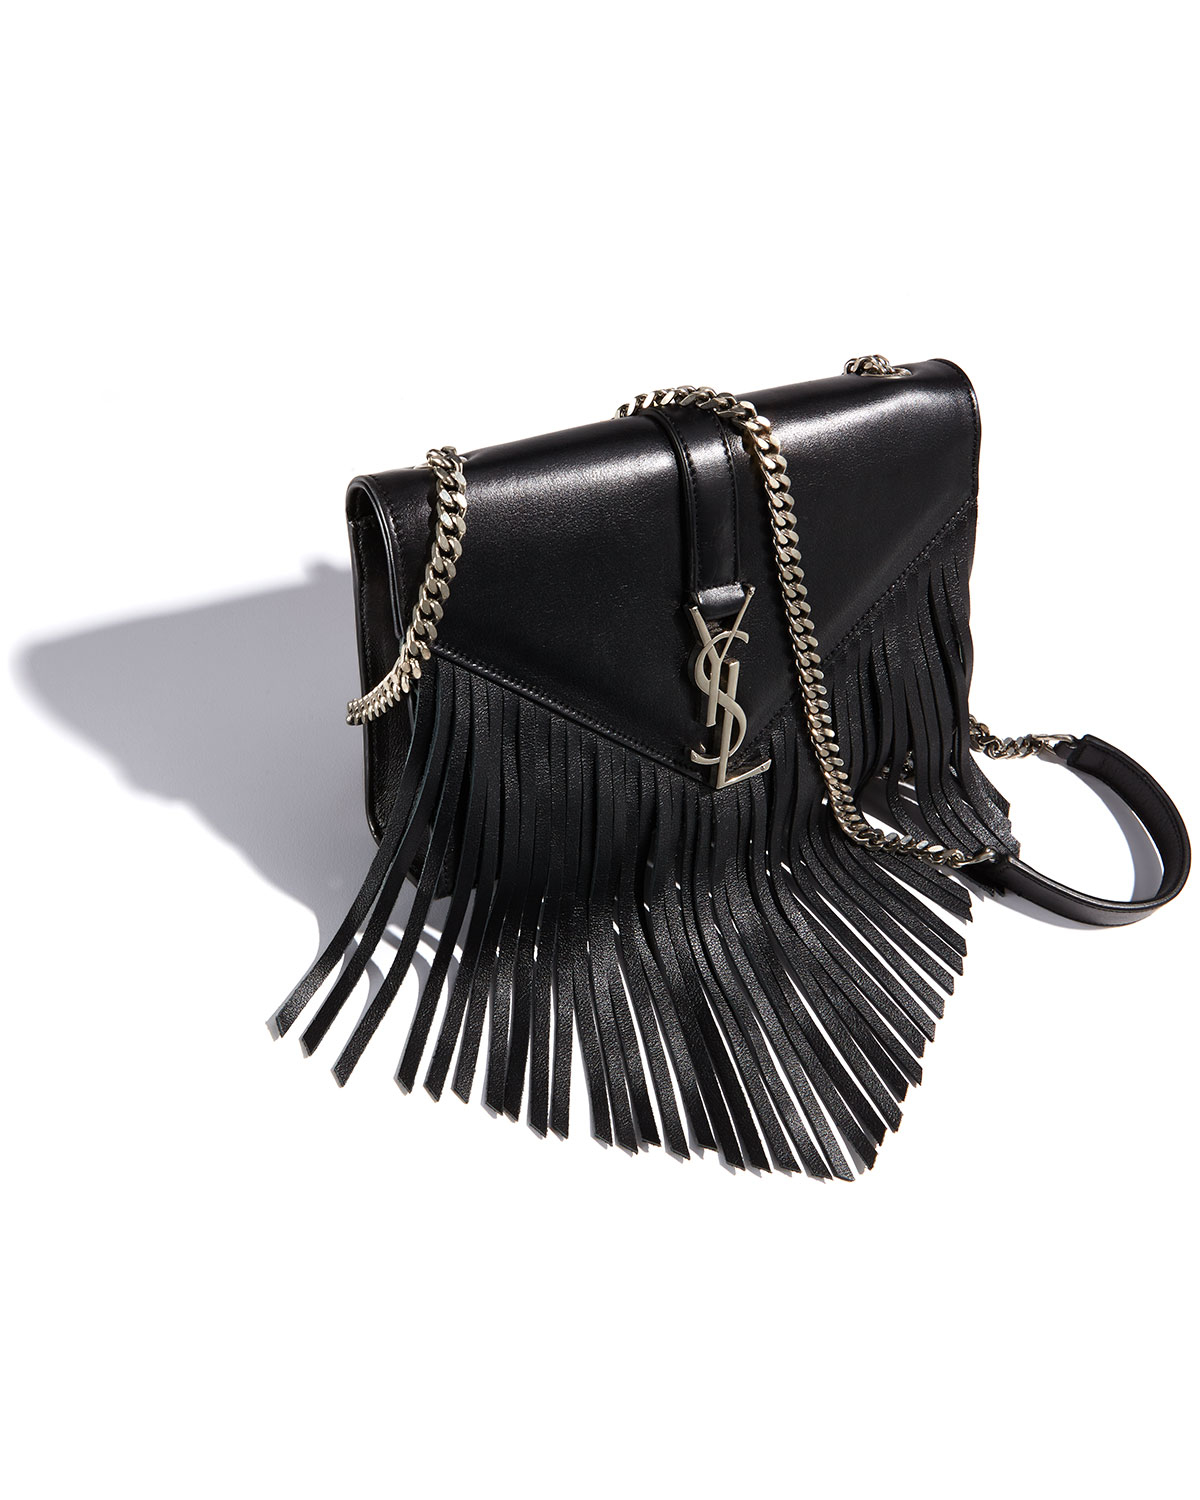 lyst saint laurent monogram small fringe shoulder bag in black. Black Bedroom Furniture Sets. Home Design Ideas